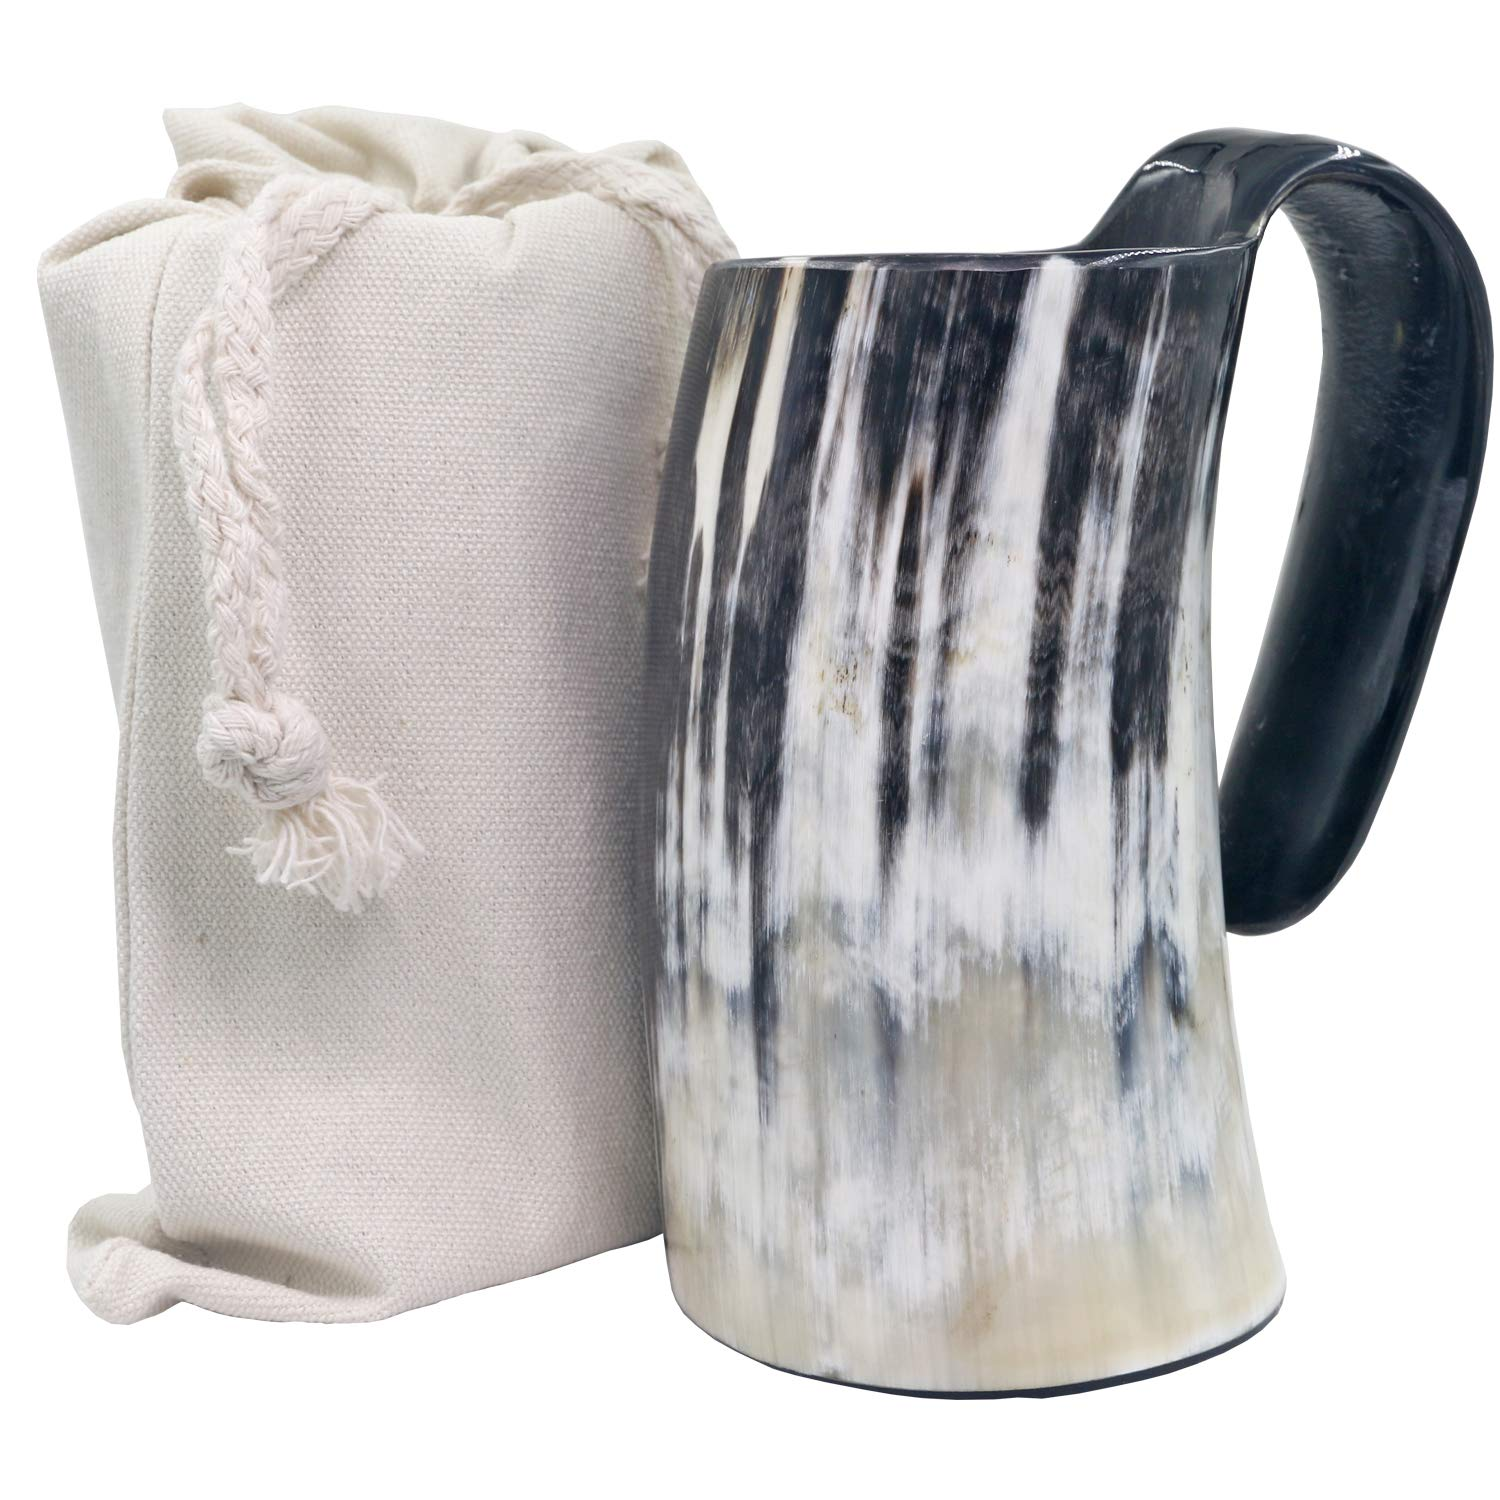 Viking Drinking Mug-Natural Ox Horn Drinking Mugs Beer Cups Viking Mugs